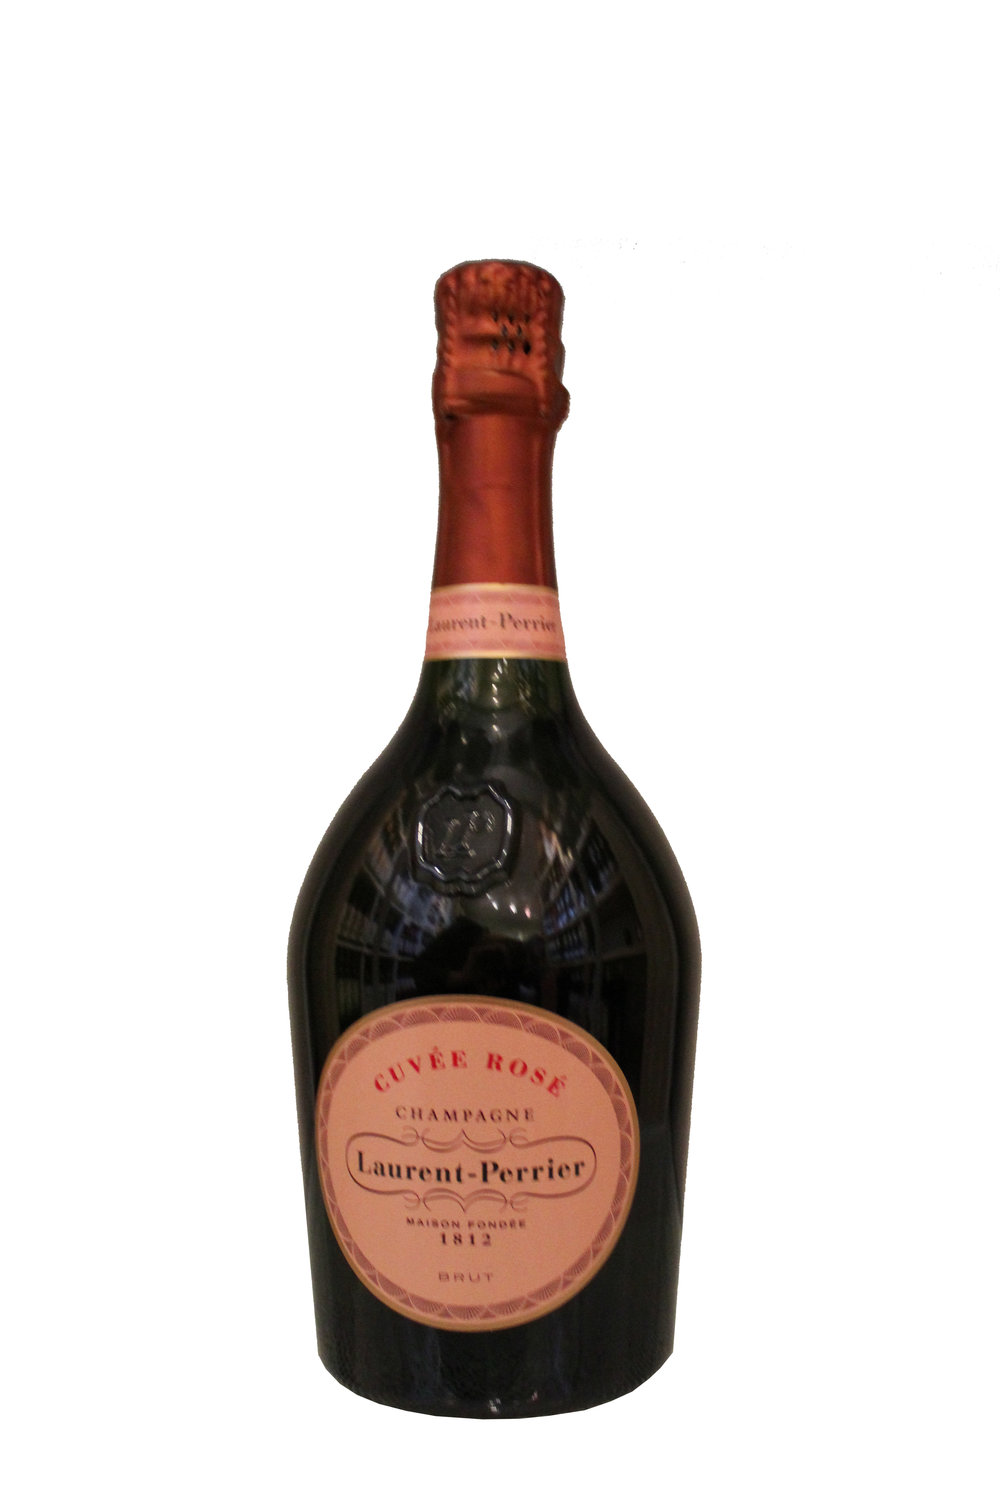 Cuvée Rosé Laurent-Perrier, France